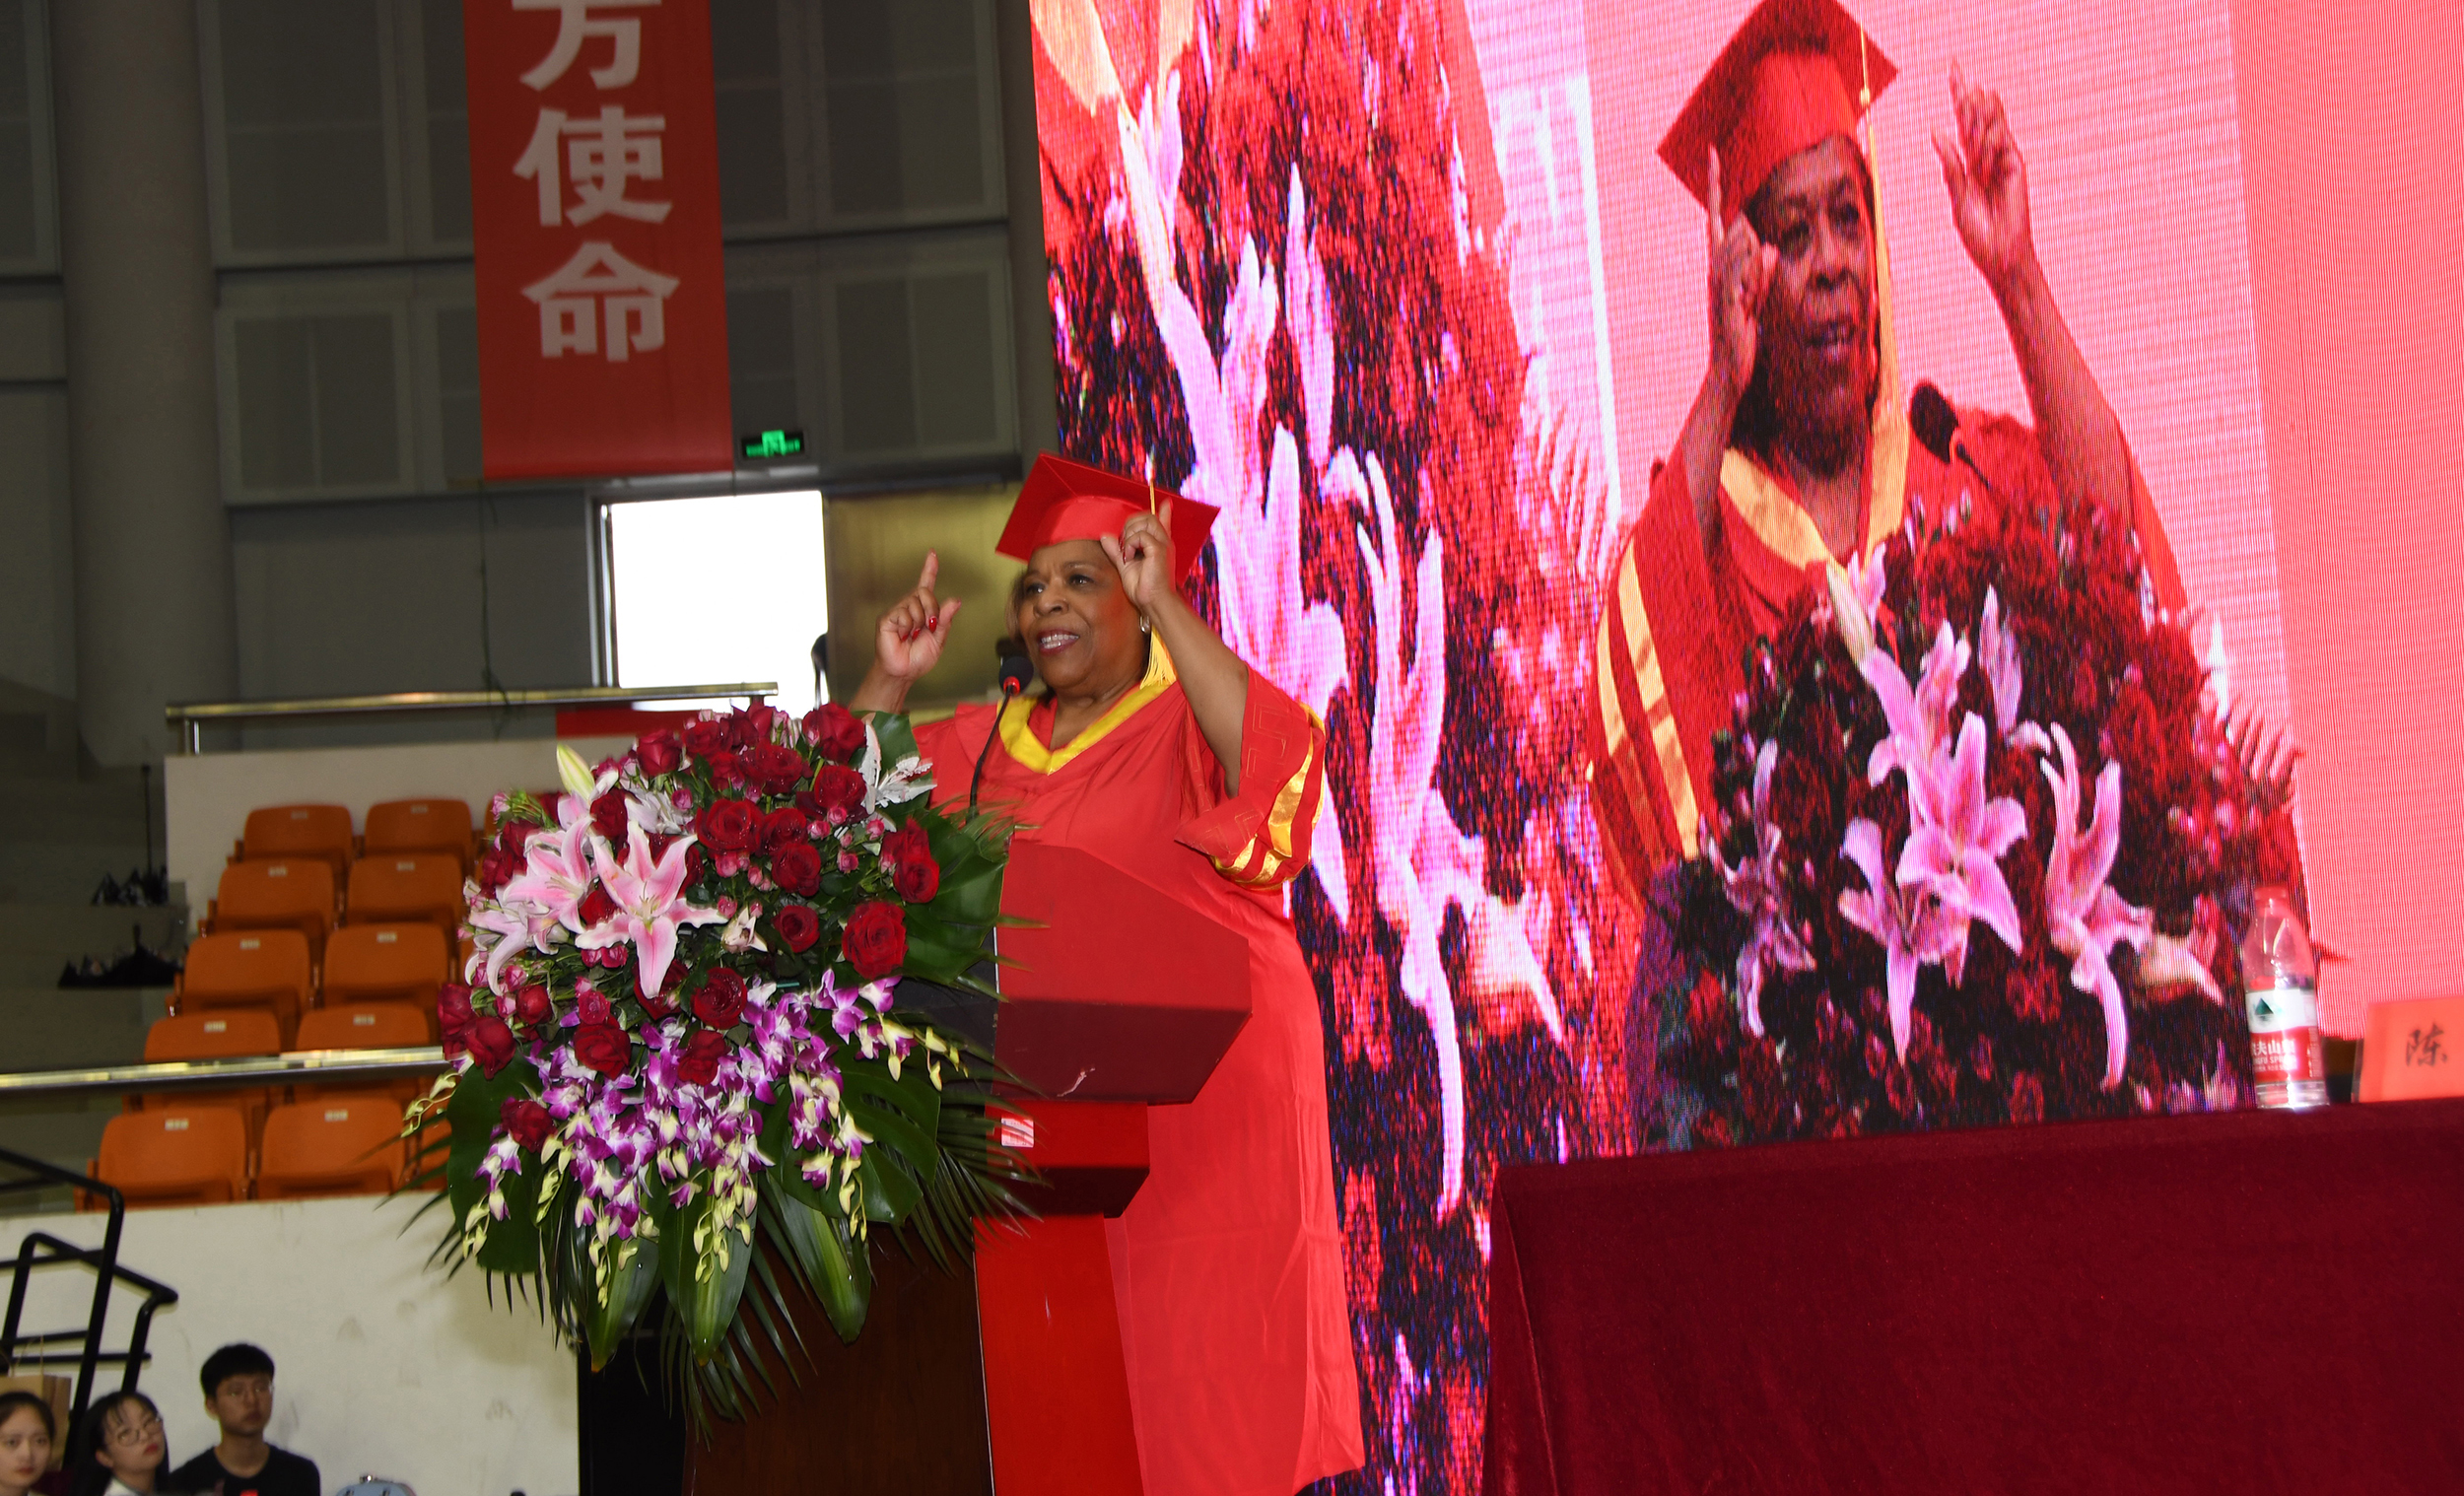 Dr. Wilma Mishoe gives her Commencement address while a larger-than-life image of her lights up the stage behind her.